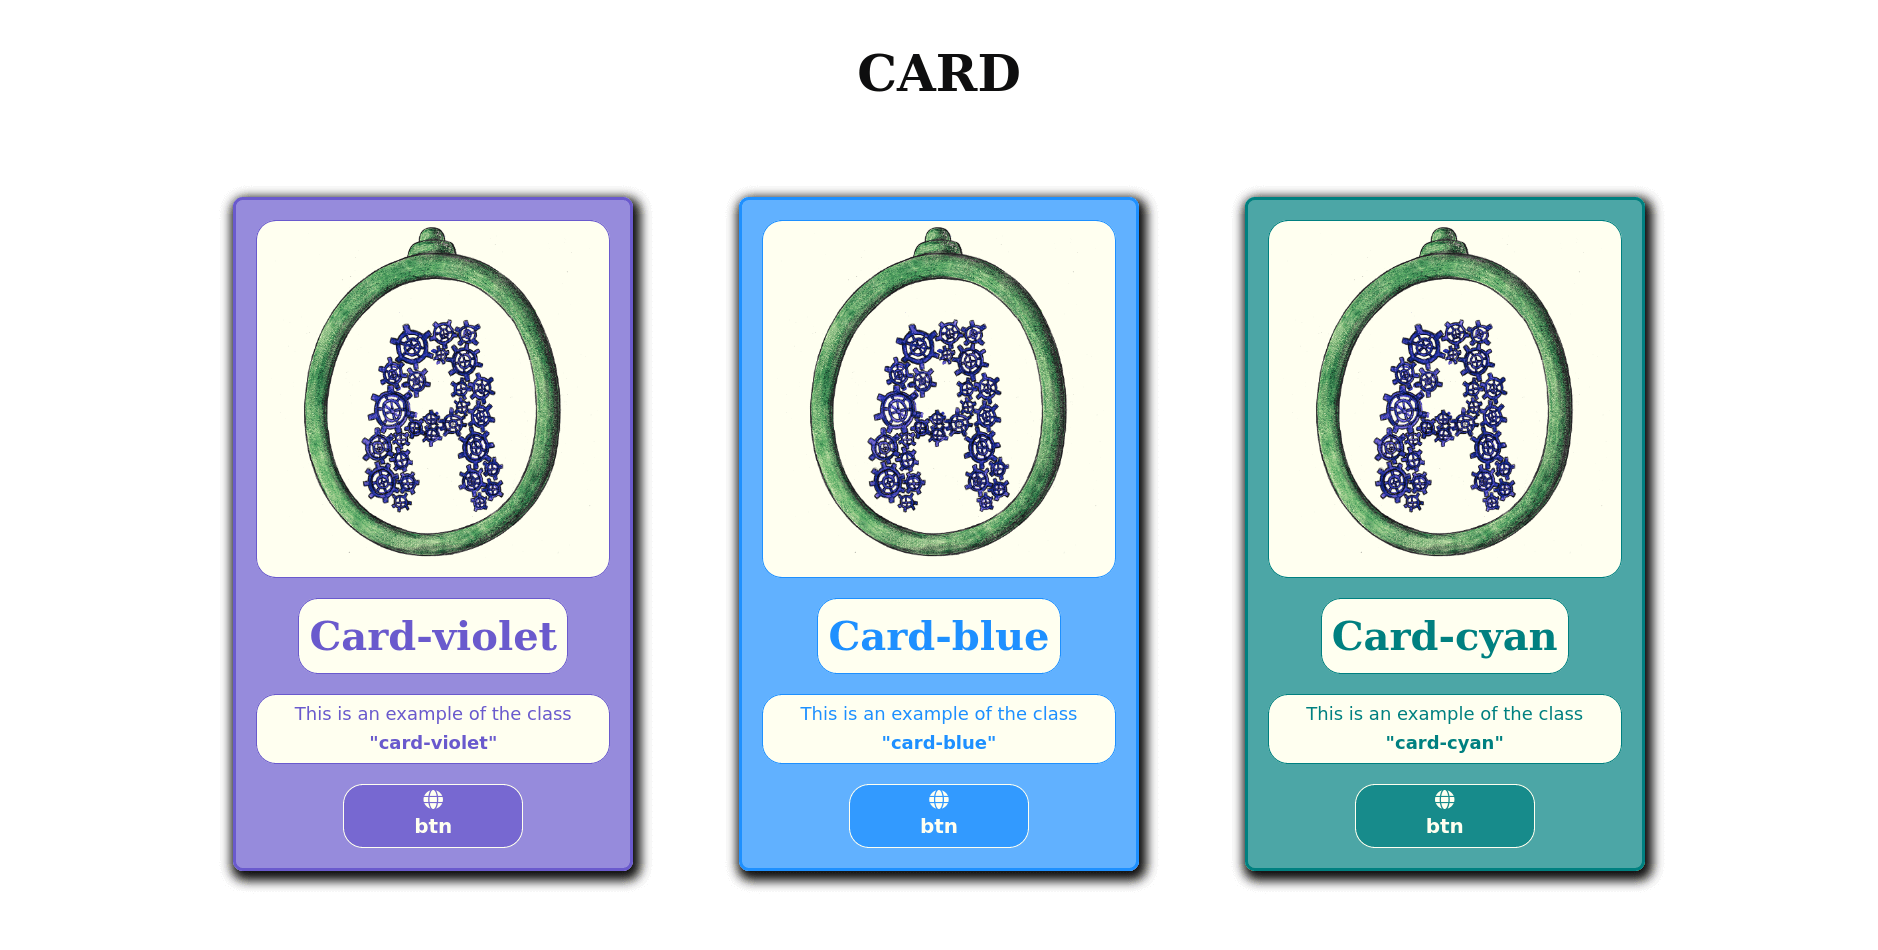 The Card example